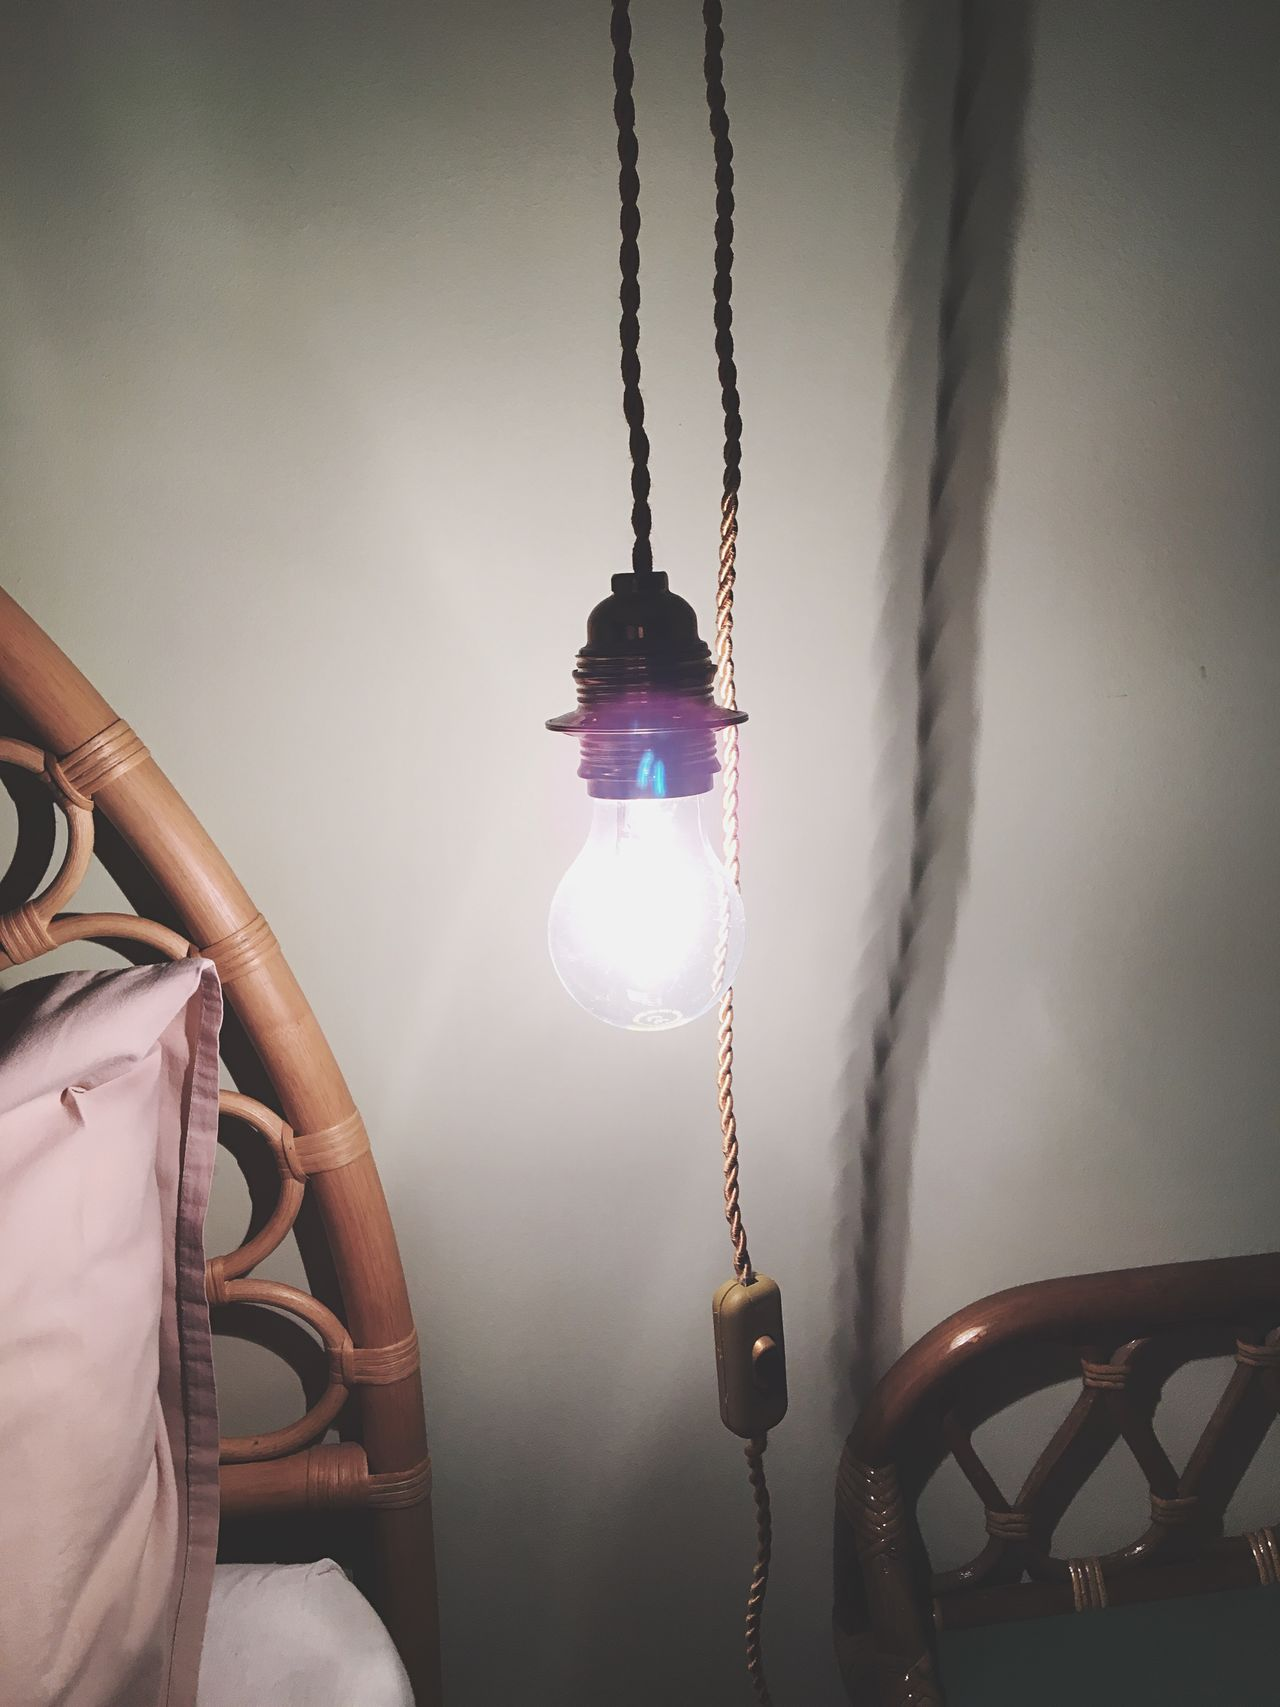 EyeEm Selects Hanging Illuminated No People Electricity  Chain Light Bulb Indoors  Close-up Sky Day